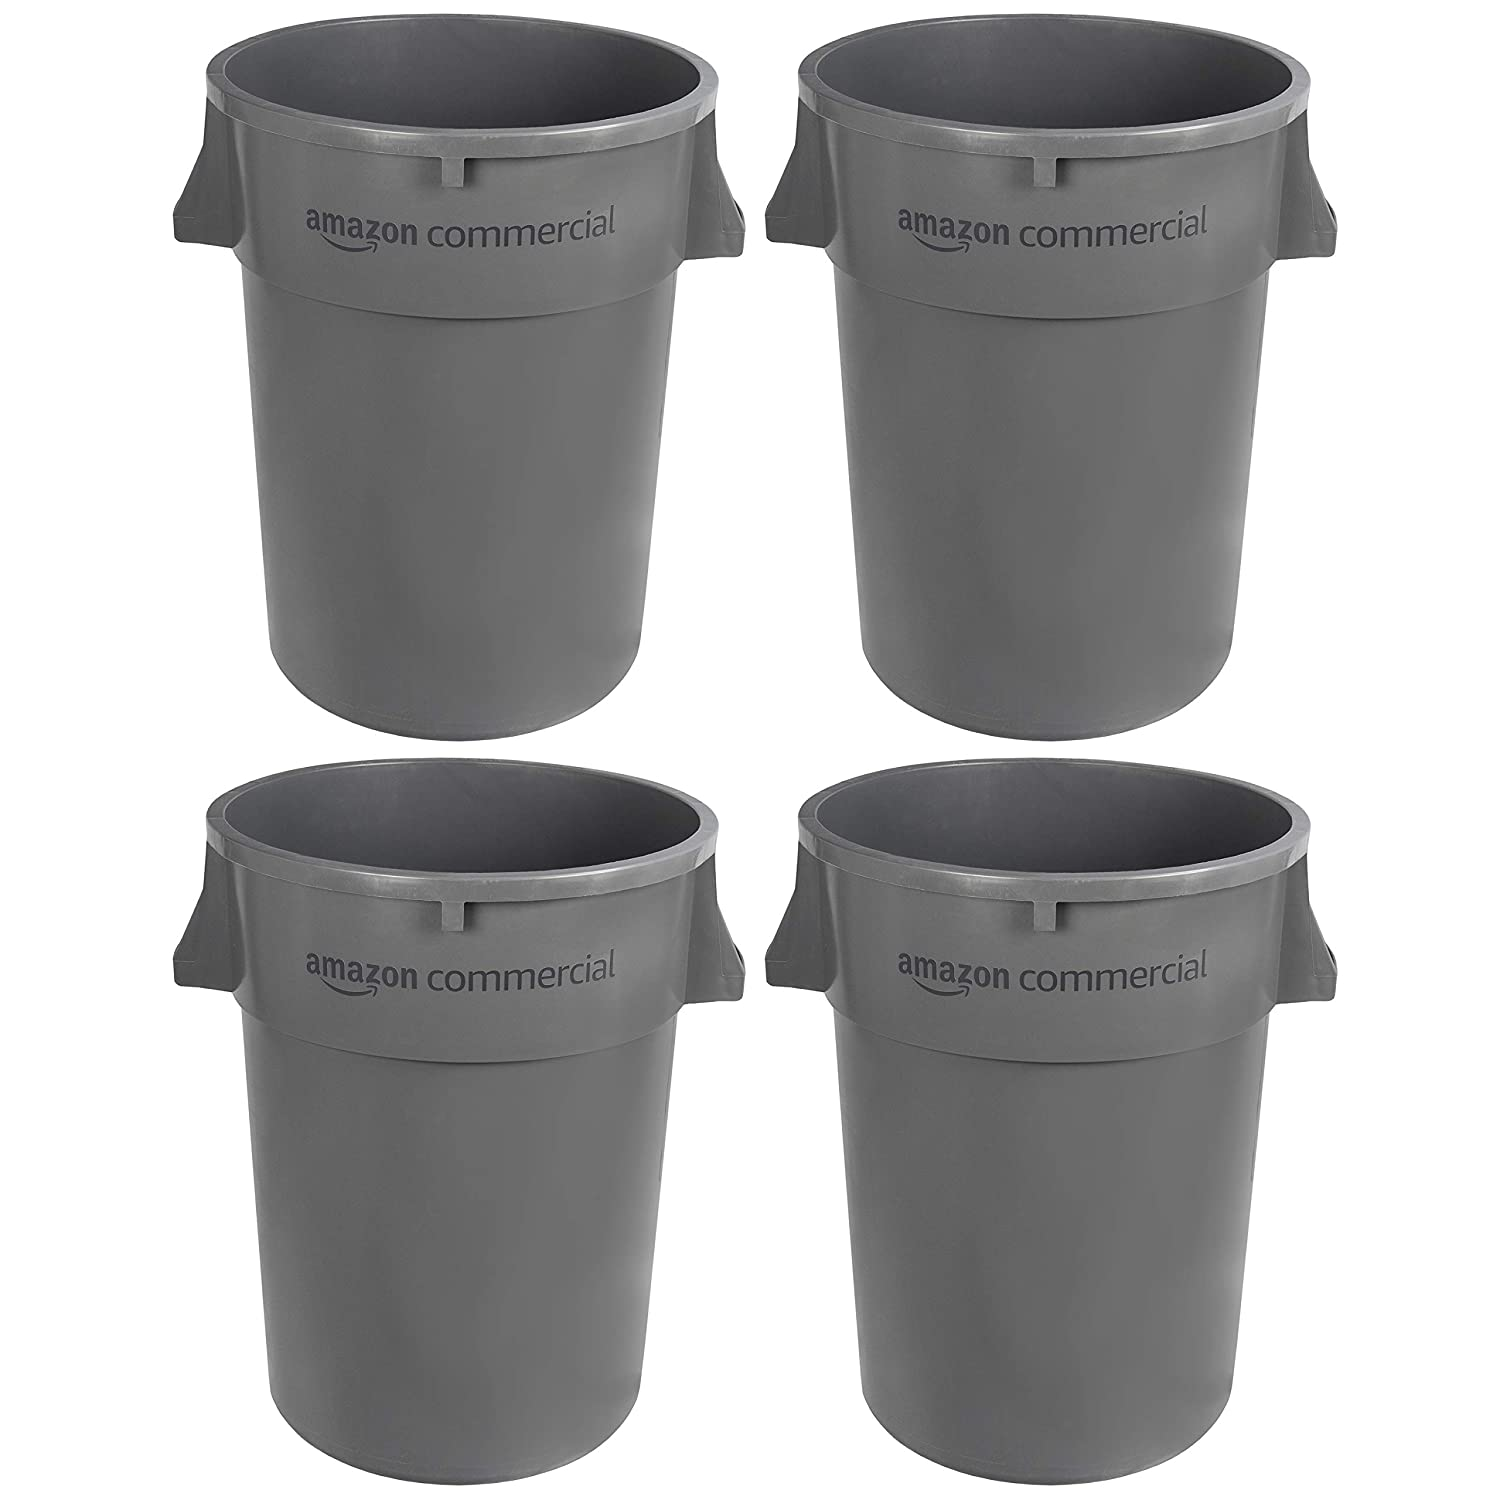 AmazonCommercial 44 Gallon Heavy Duty Trash G Round Garbage Seasonal Wrap Introduction Surprise price Can